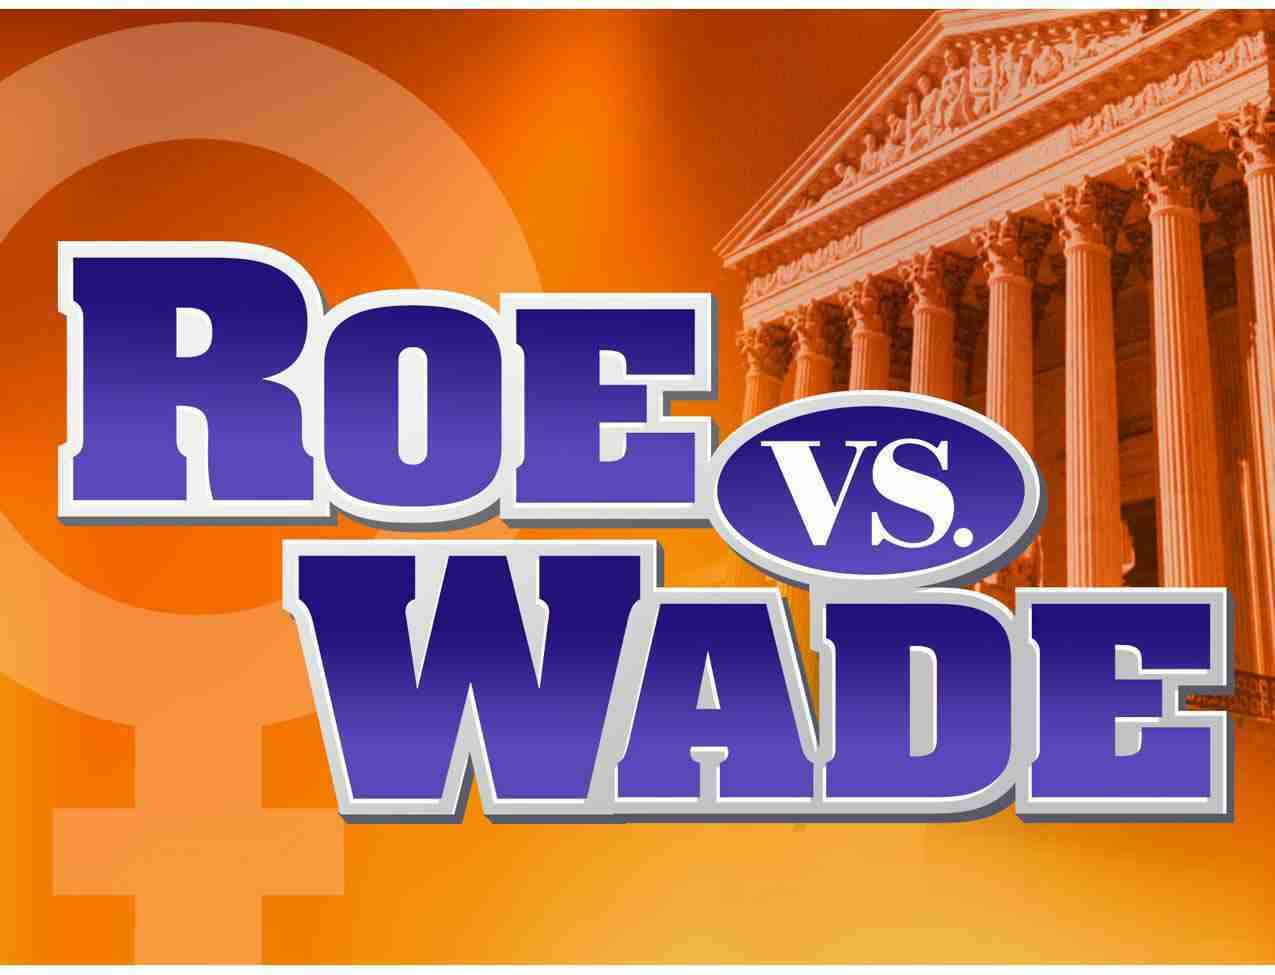 abortion roe vs wade essay Supreme court finds right to choose abortion on january 22, 1973, the us supreme court announced its decision in roe vwade, a challenge to a texas statute that made it a crime to perform an abortion unless a woman's life was at stake.